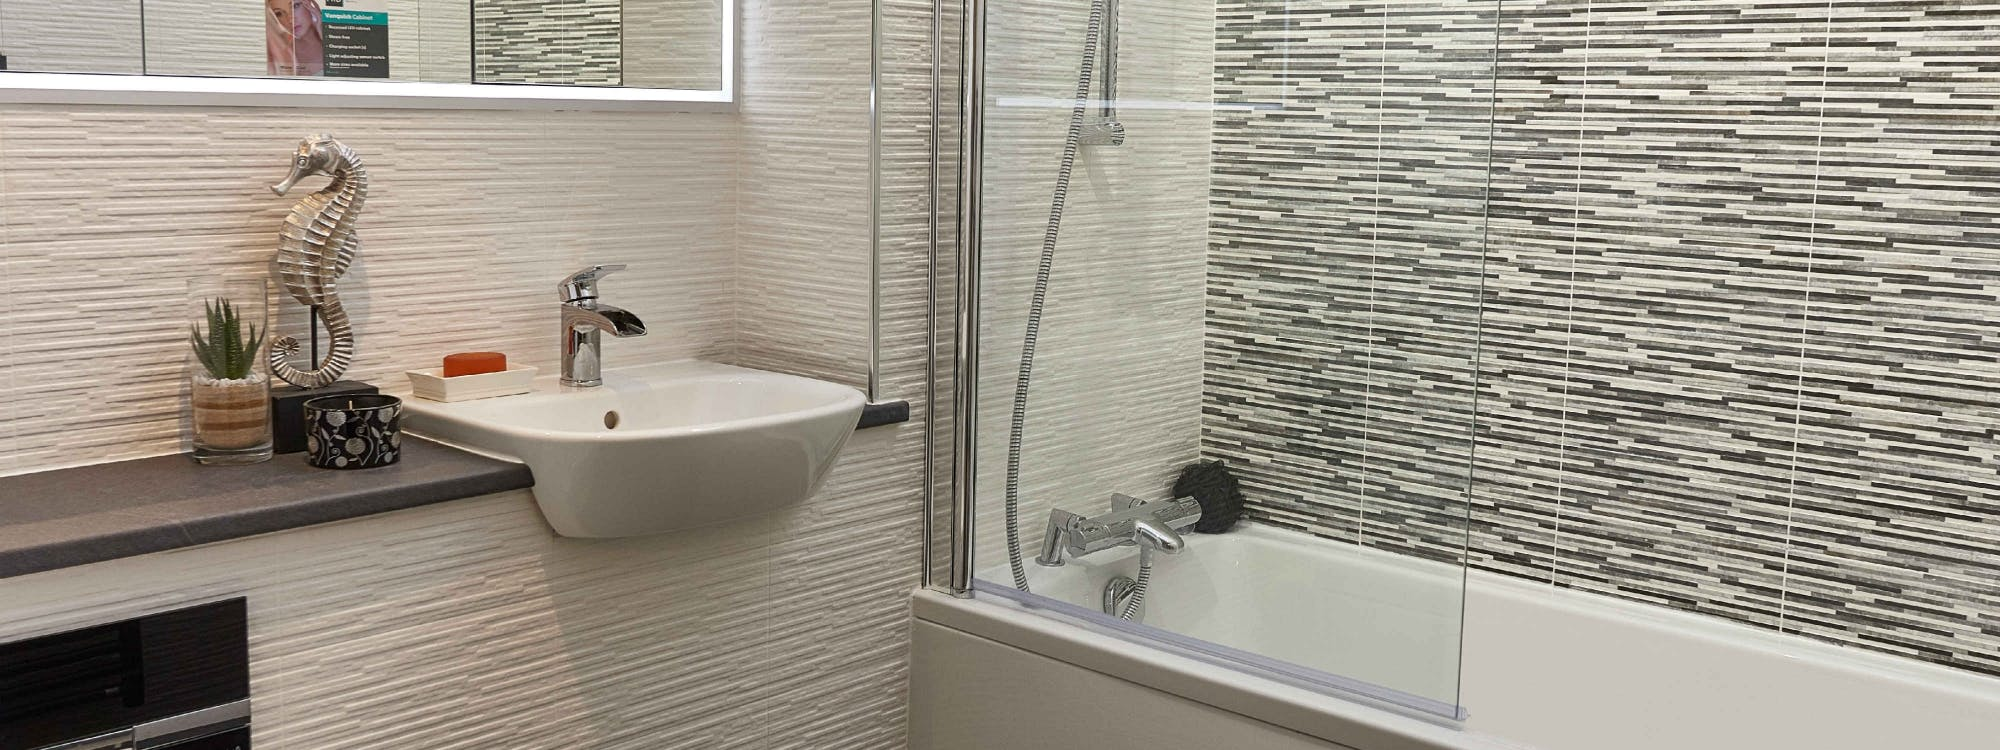 Visit out Leeds Bathroom Showroom - we can help you make your dream bathroom a reality.